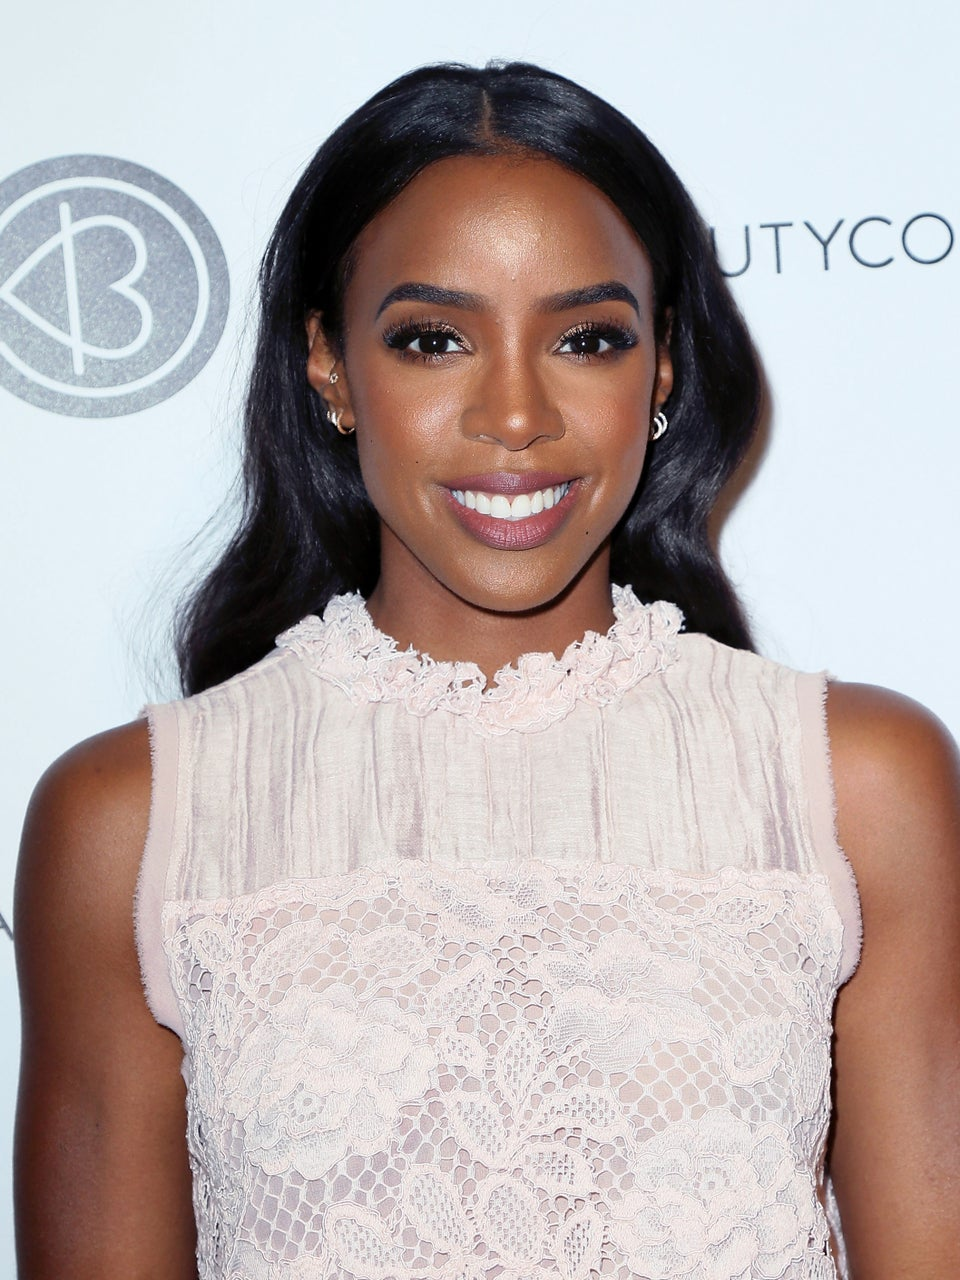 Kelly Rowland Promoted Her Upcoming Make-Up Line For Chocolate Girls At Beautycon